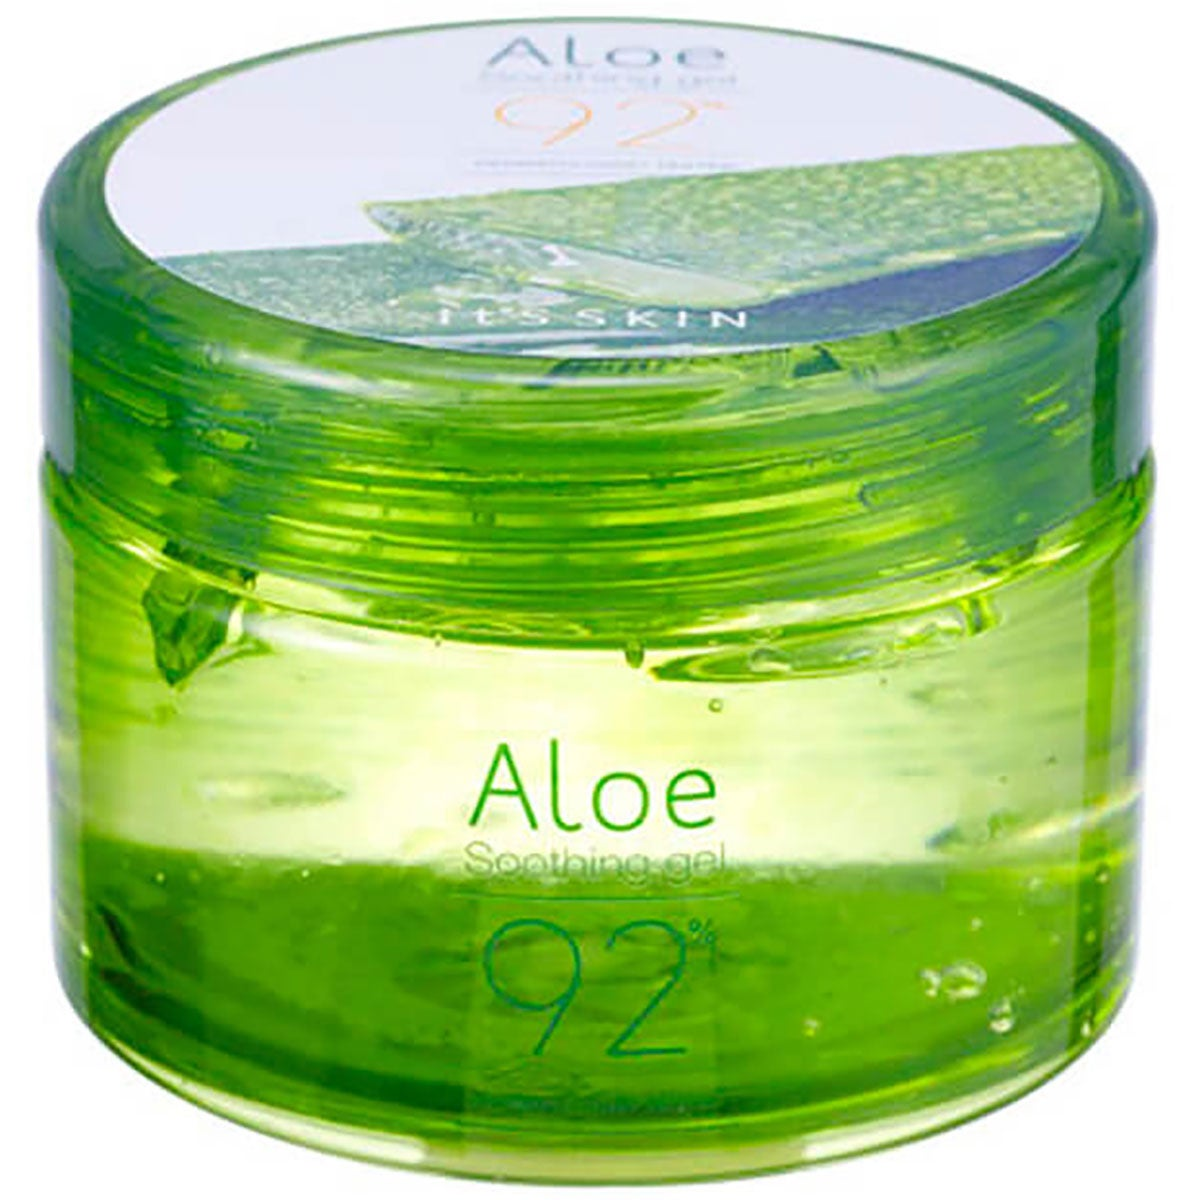 It'S SKIN 92% Aloe Soothing Gel (jar)